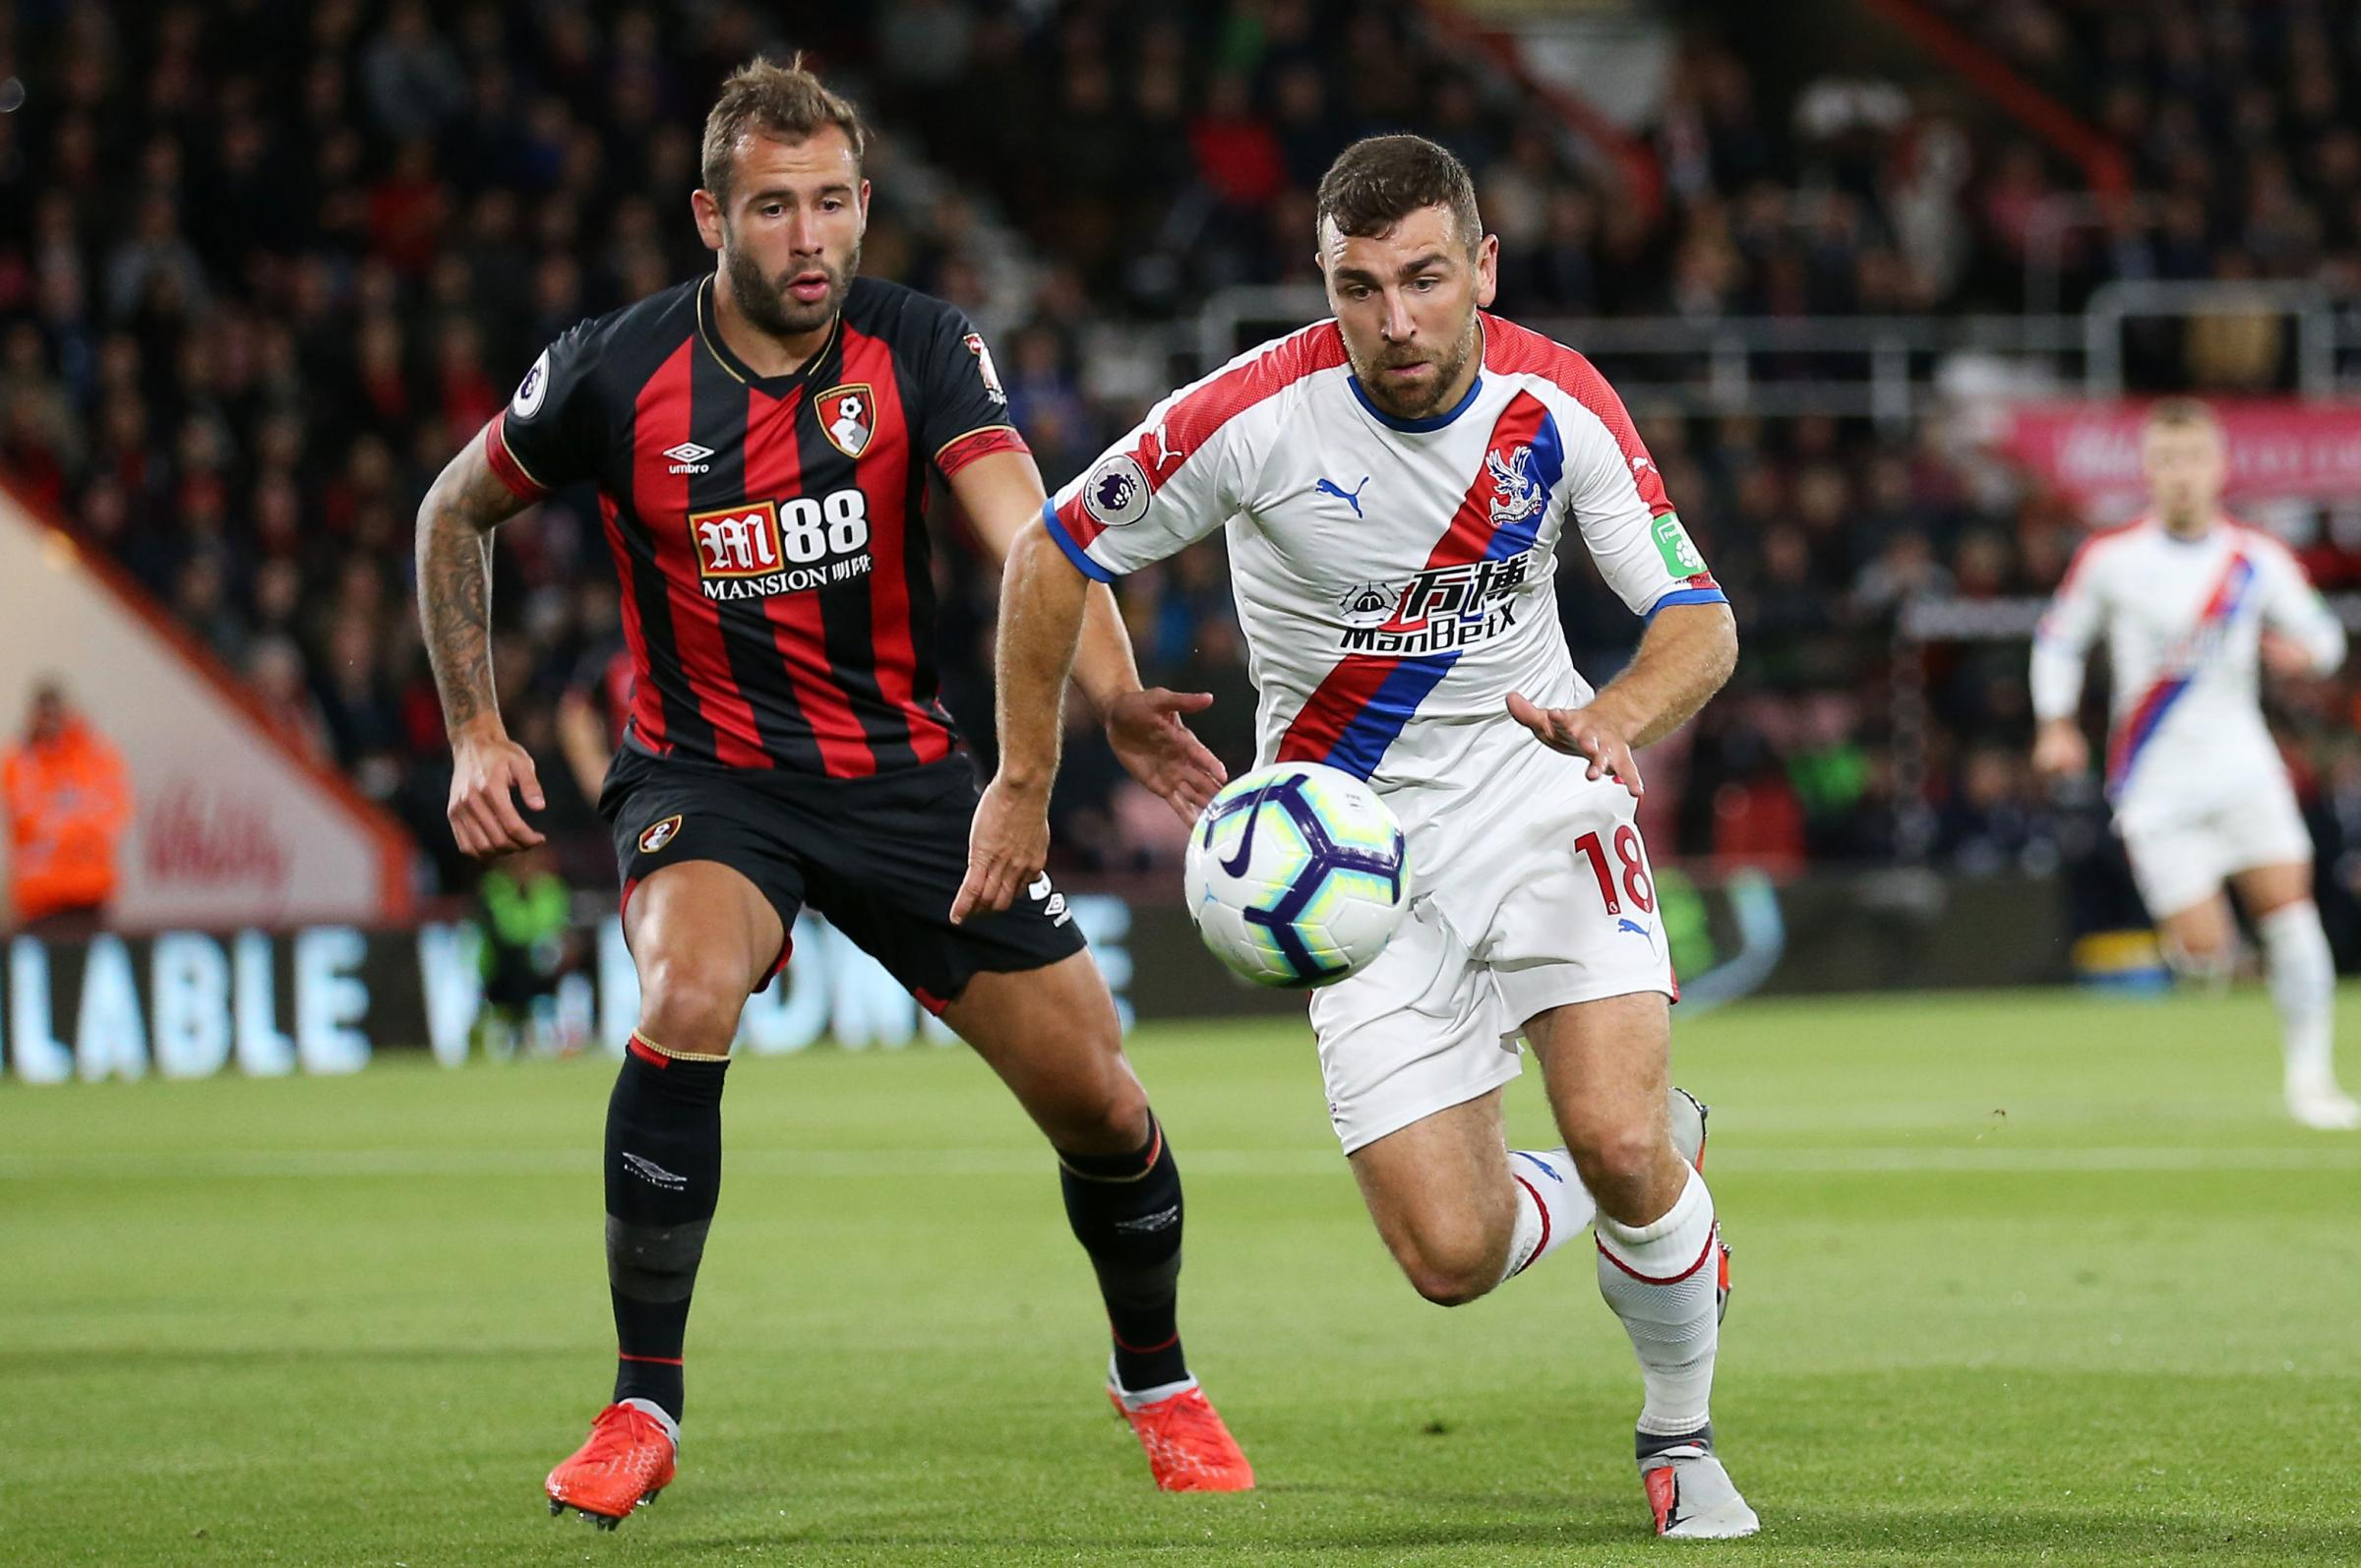 James McArthur has been a regular for Crystal Palace this season, but has asked not to be selected by Scotland.